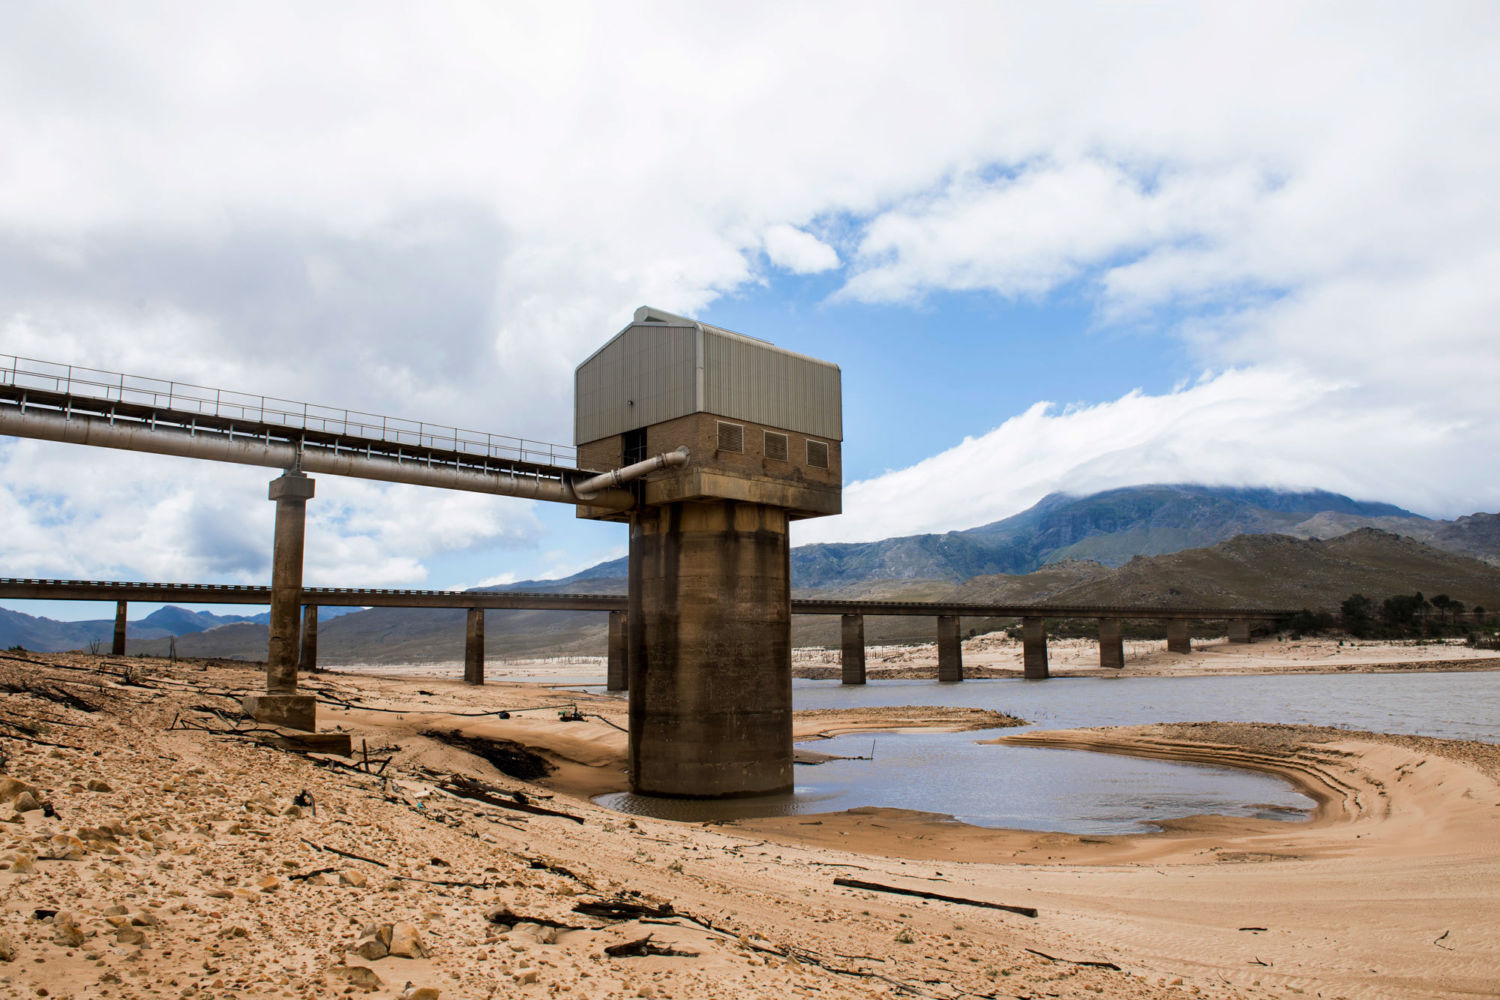 Awaiting Day Zero: Cape Town Faces an Uncertain Water Future